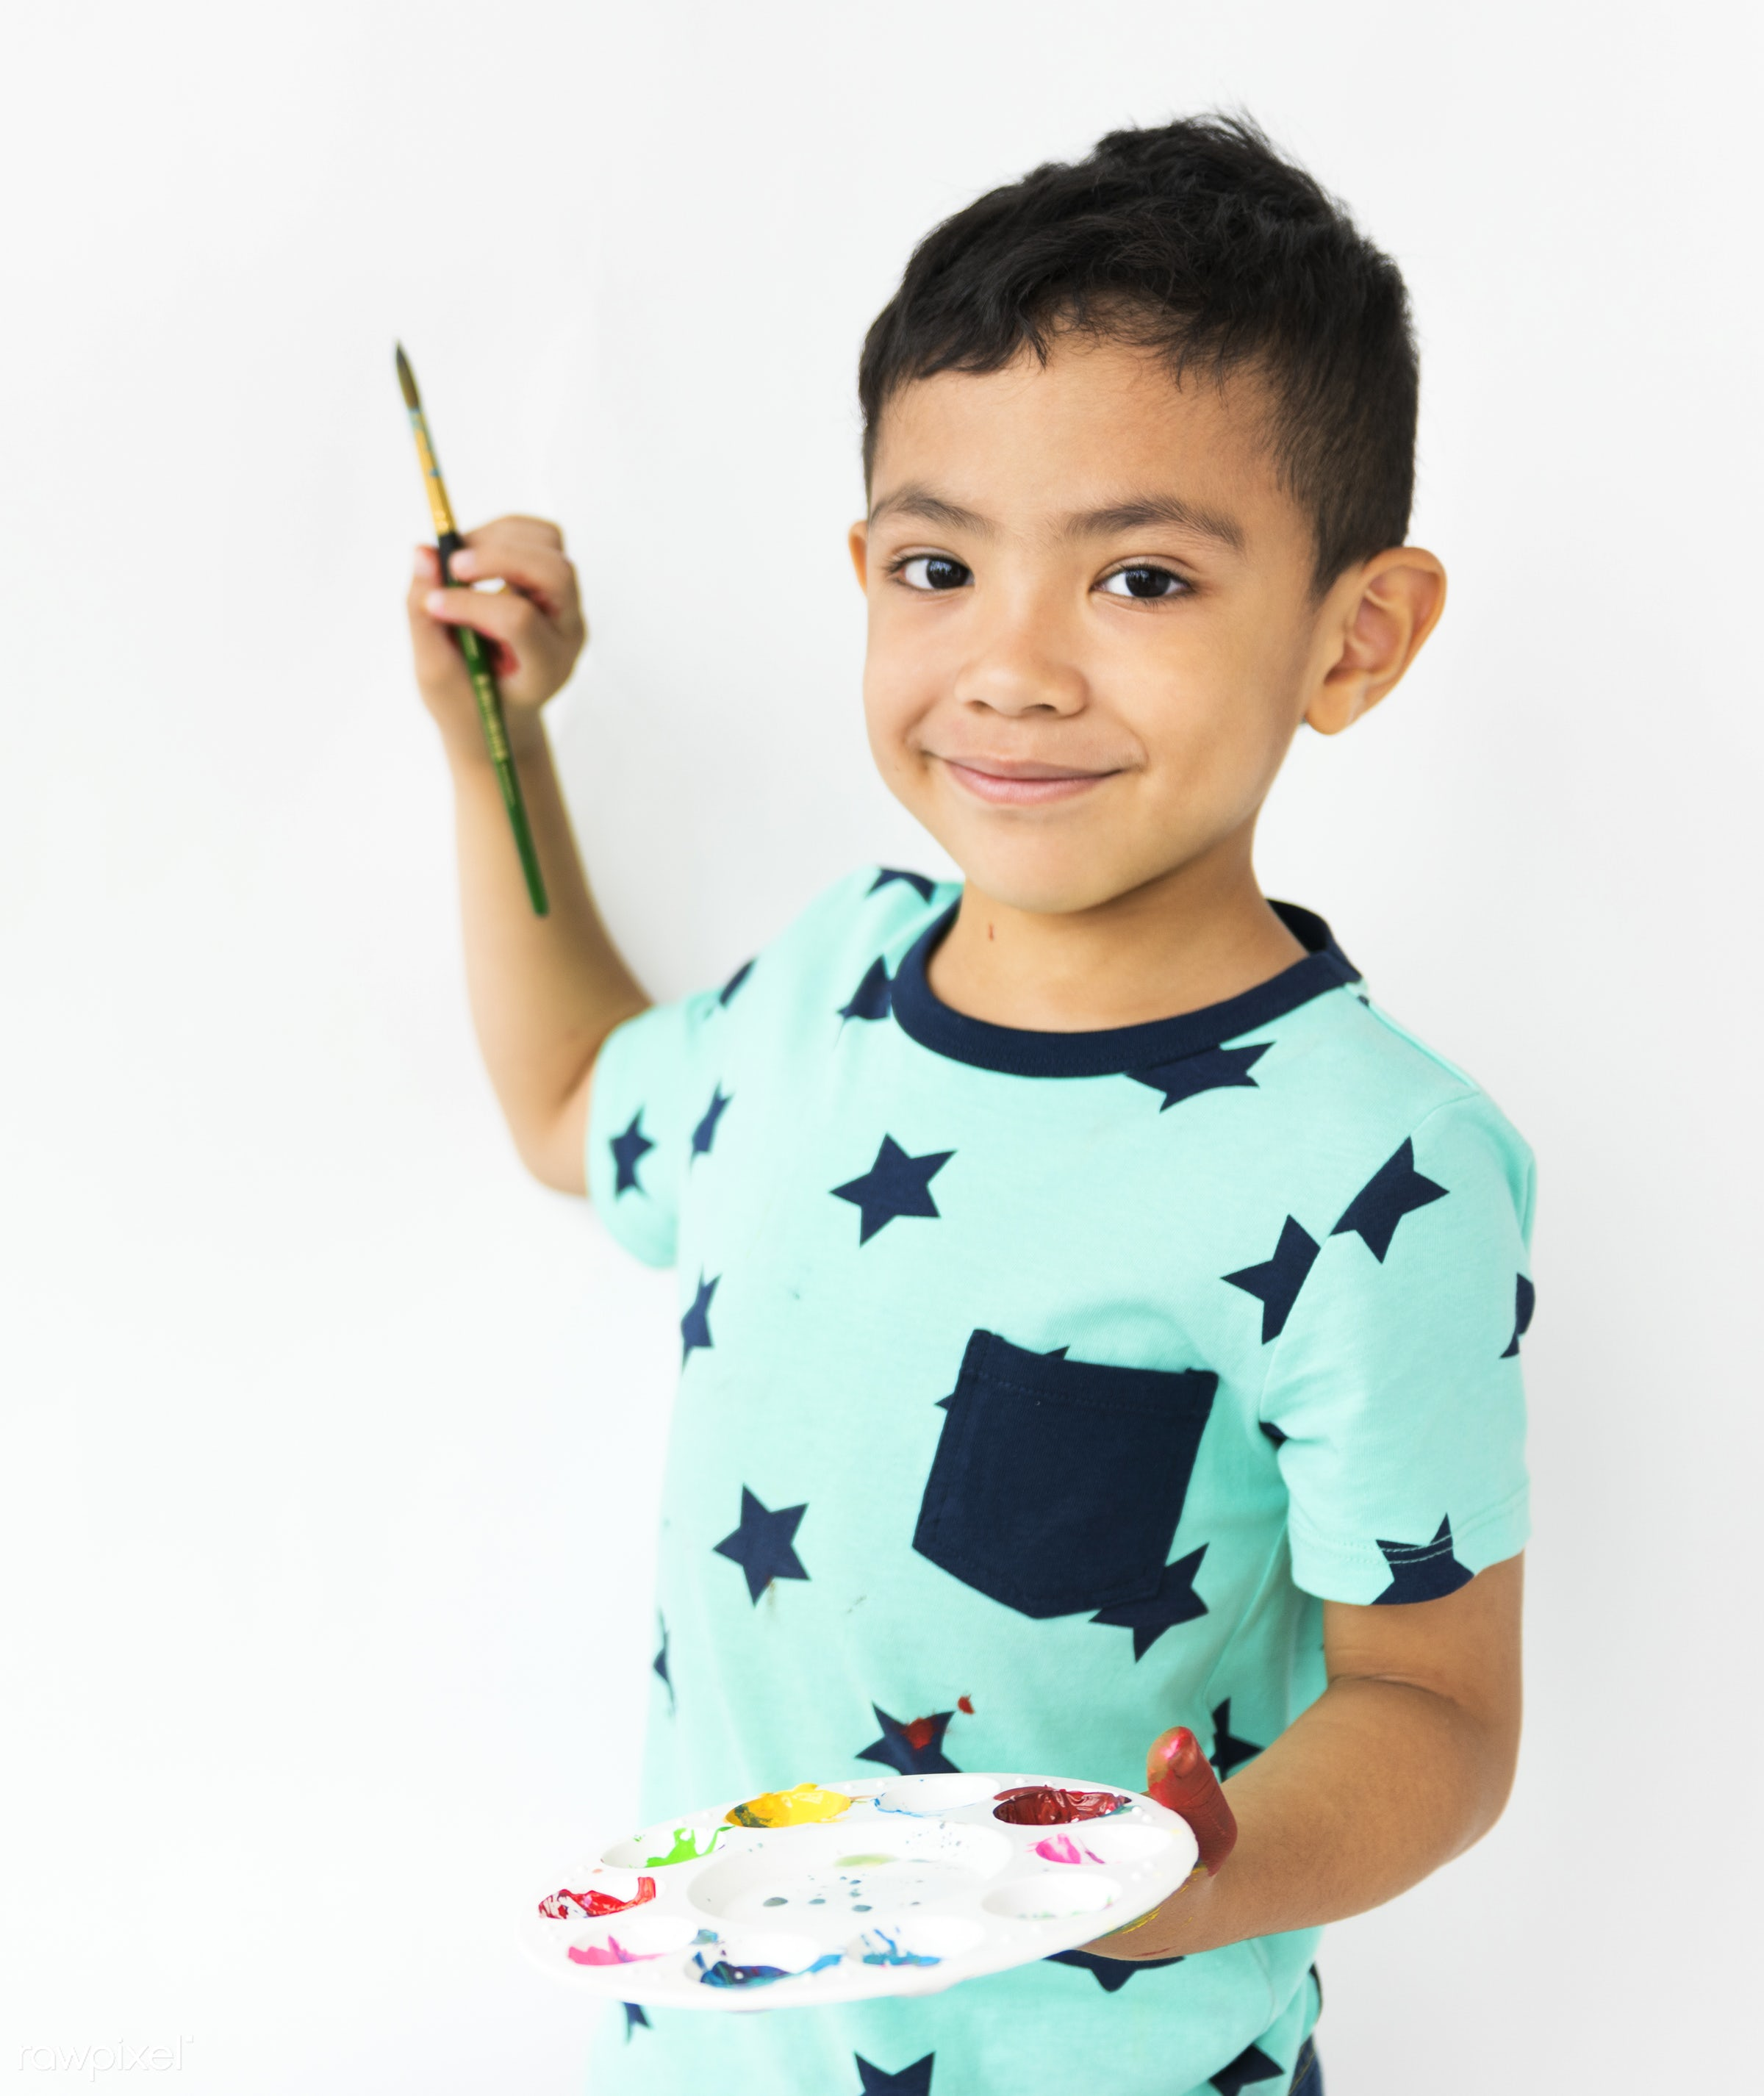 studio, expression, person, little, recreation, people, kid, smiling, isolated, art, son, happiness, leisure, paint, fun,...